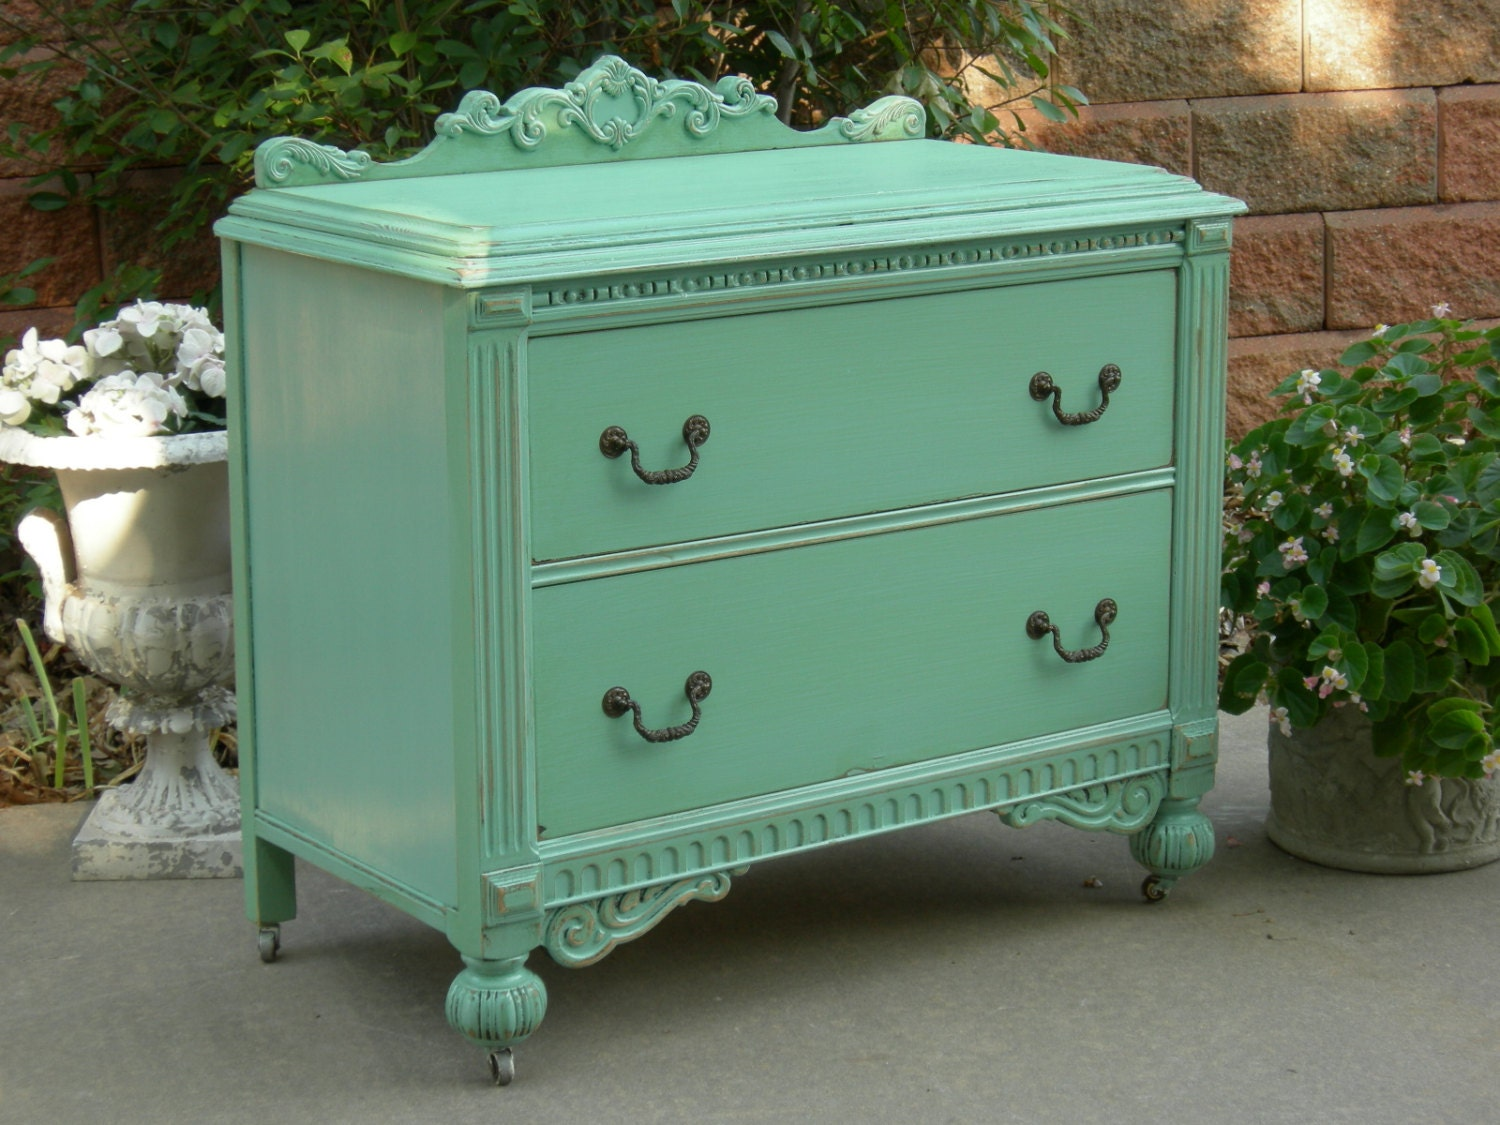 ... Shabby Chic Furniture Painted Antique Furniture Bedroom FOR CUSTOM  ORDER. gallery photo gallery photo gallery photo gallery photo gallery photo - Beautiful White Dresser Shabby Chest Shabby Chic Furniture Painted